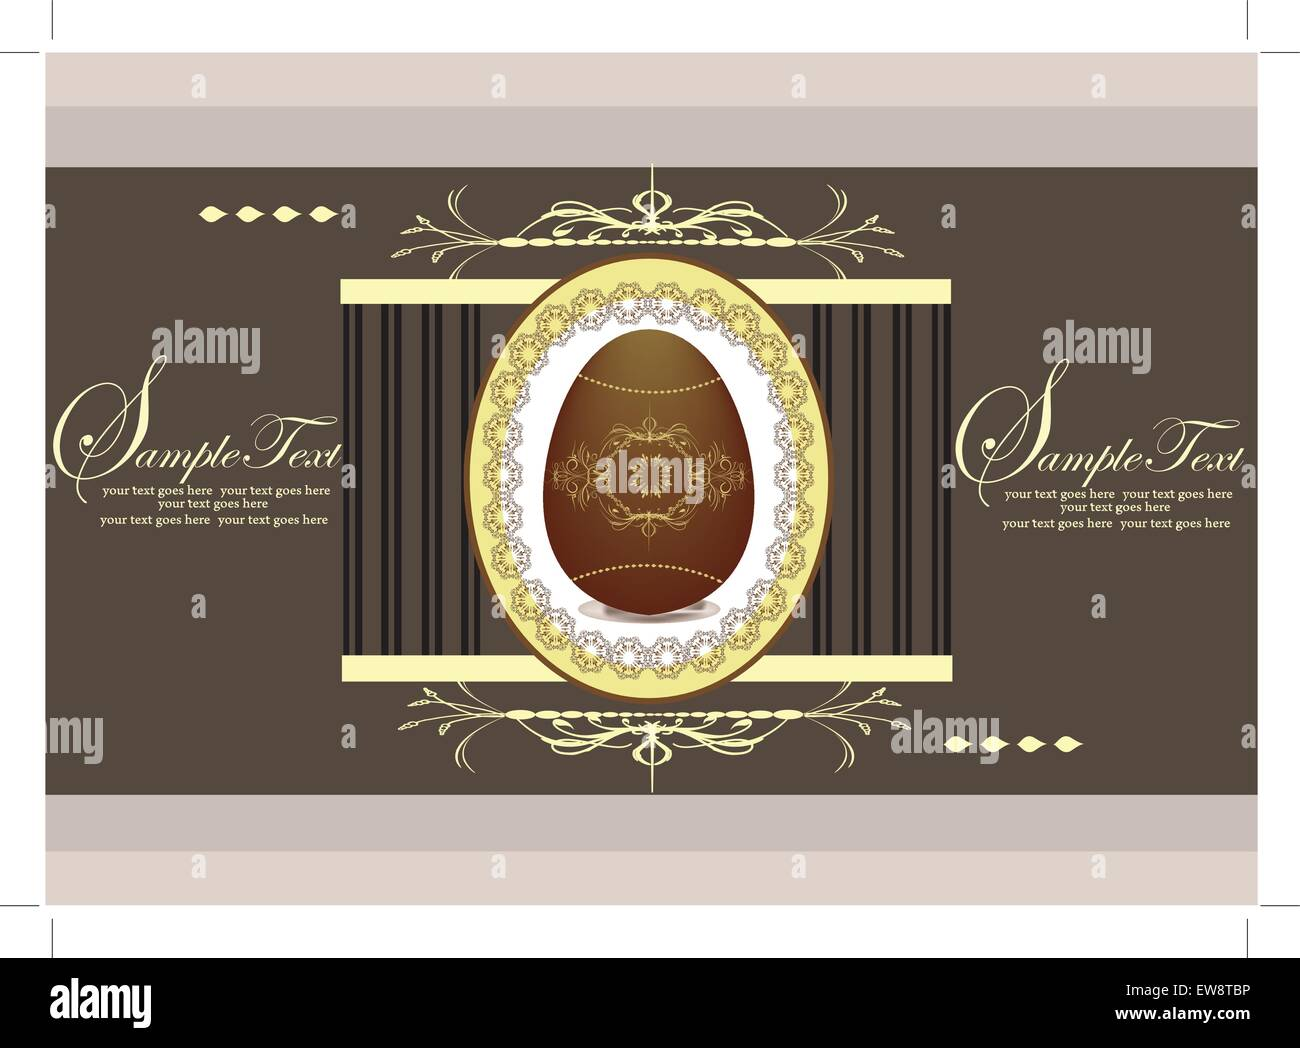 Vintage easter invitation card with ornate elegant abstract floral design, brown eggs on gray. Vector illustration. Stock Vector